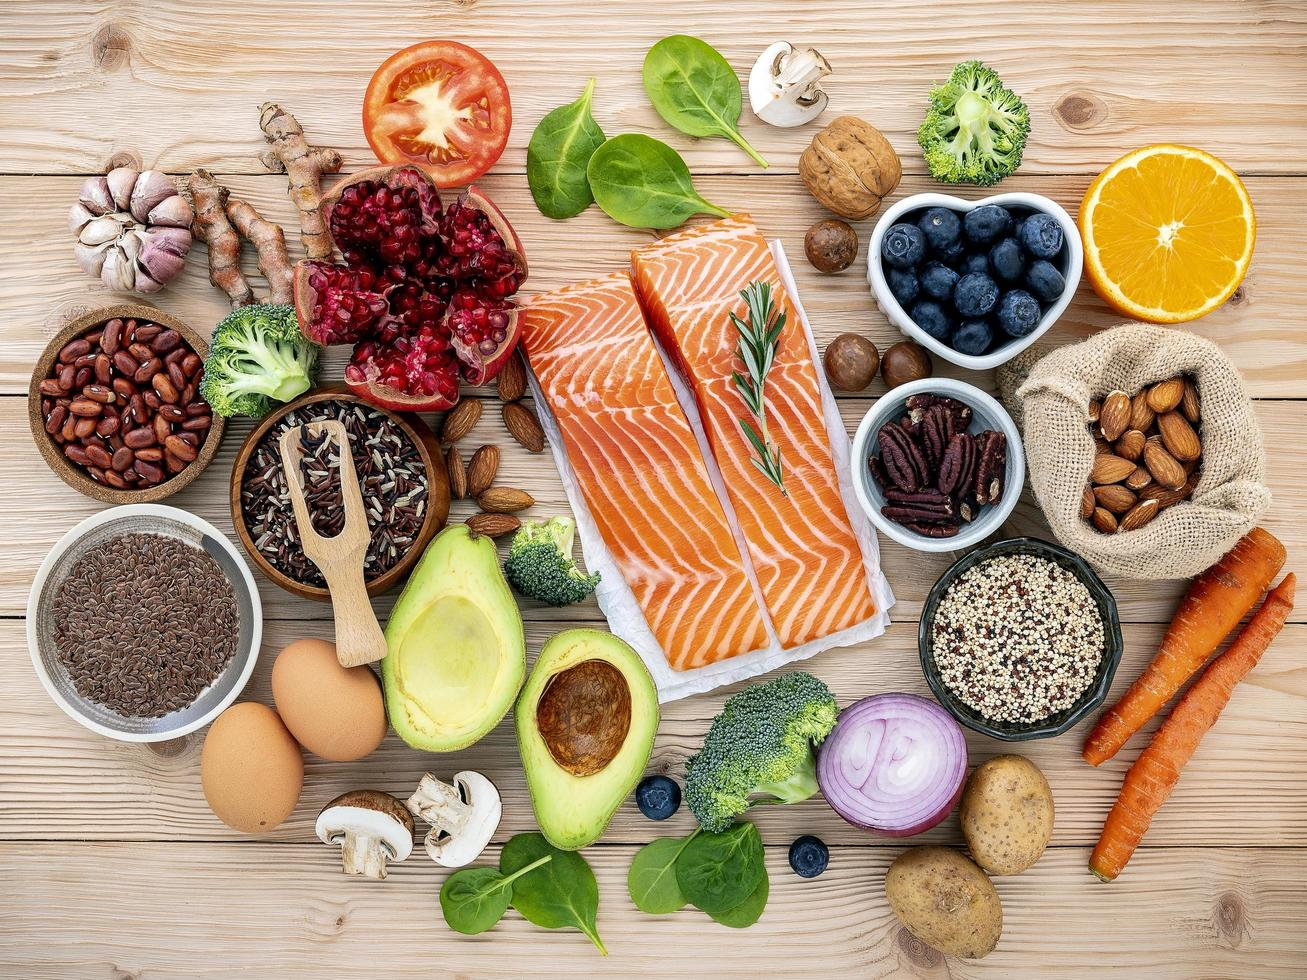 Healthy ingredients on a wooden background photo